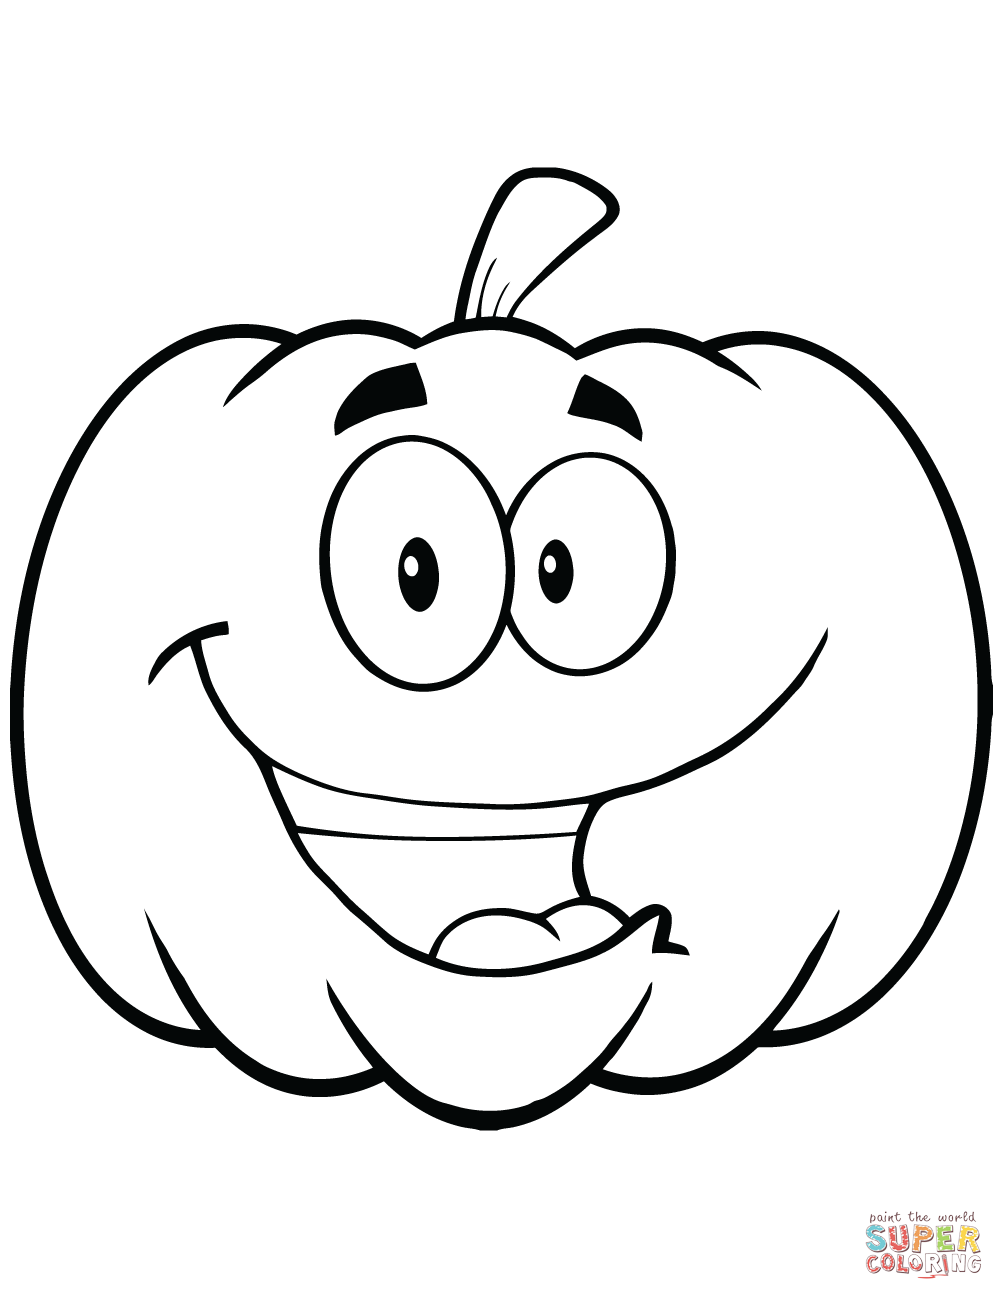 1004x1300 Cartoon Halloween Pumpkin Coloring Page Free Printable Coloring